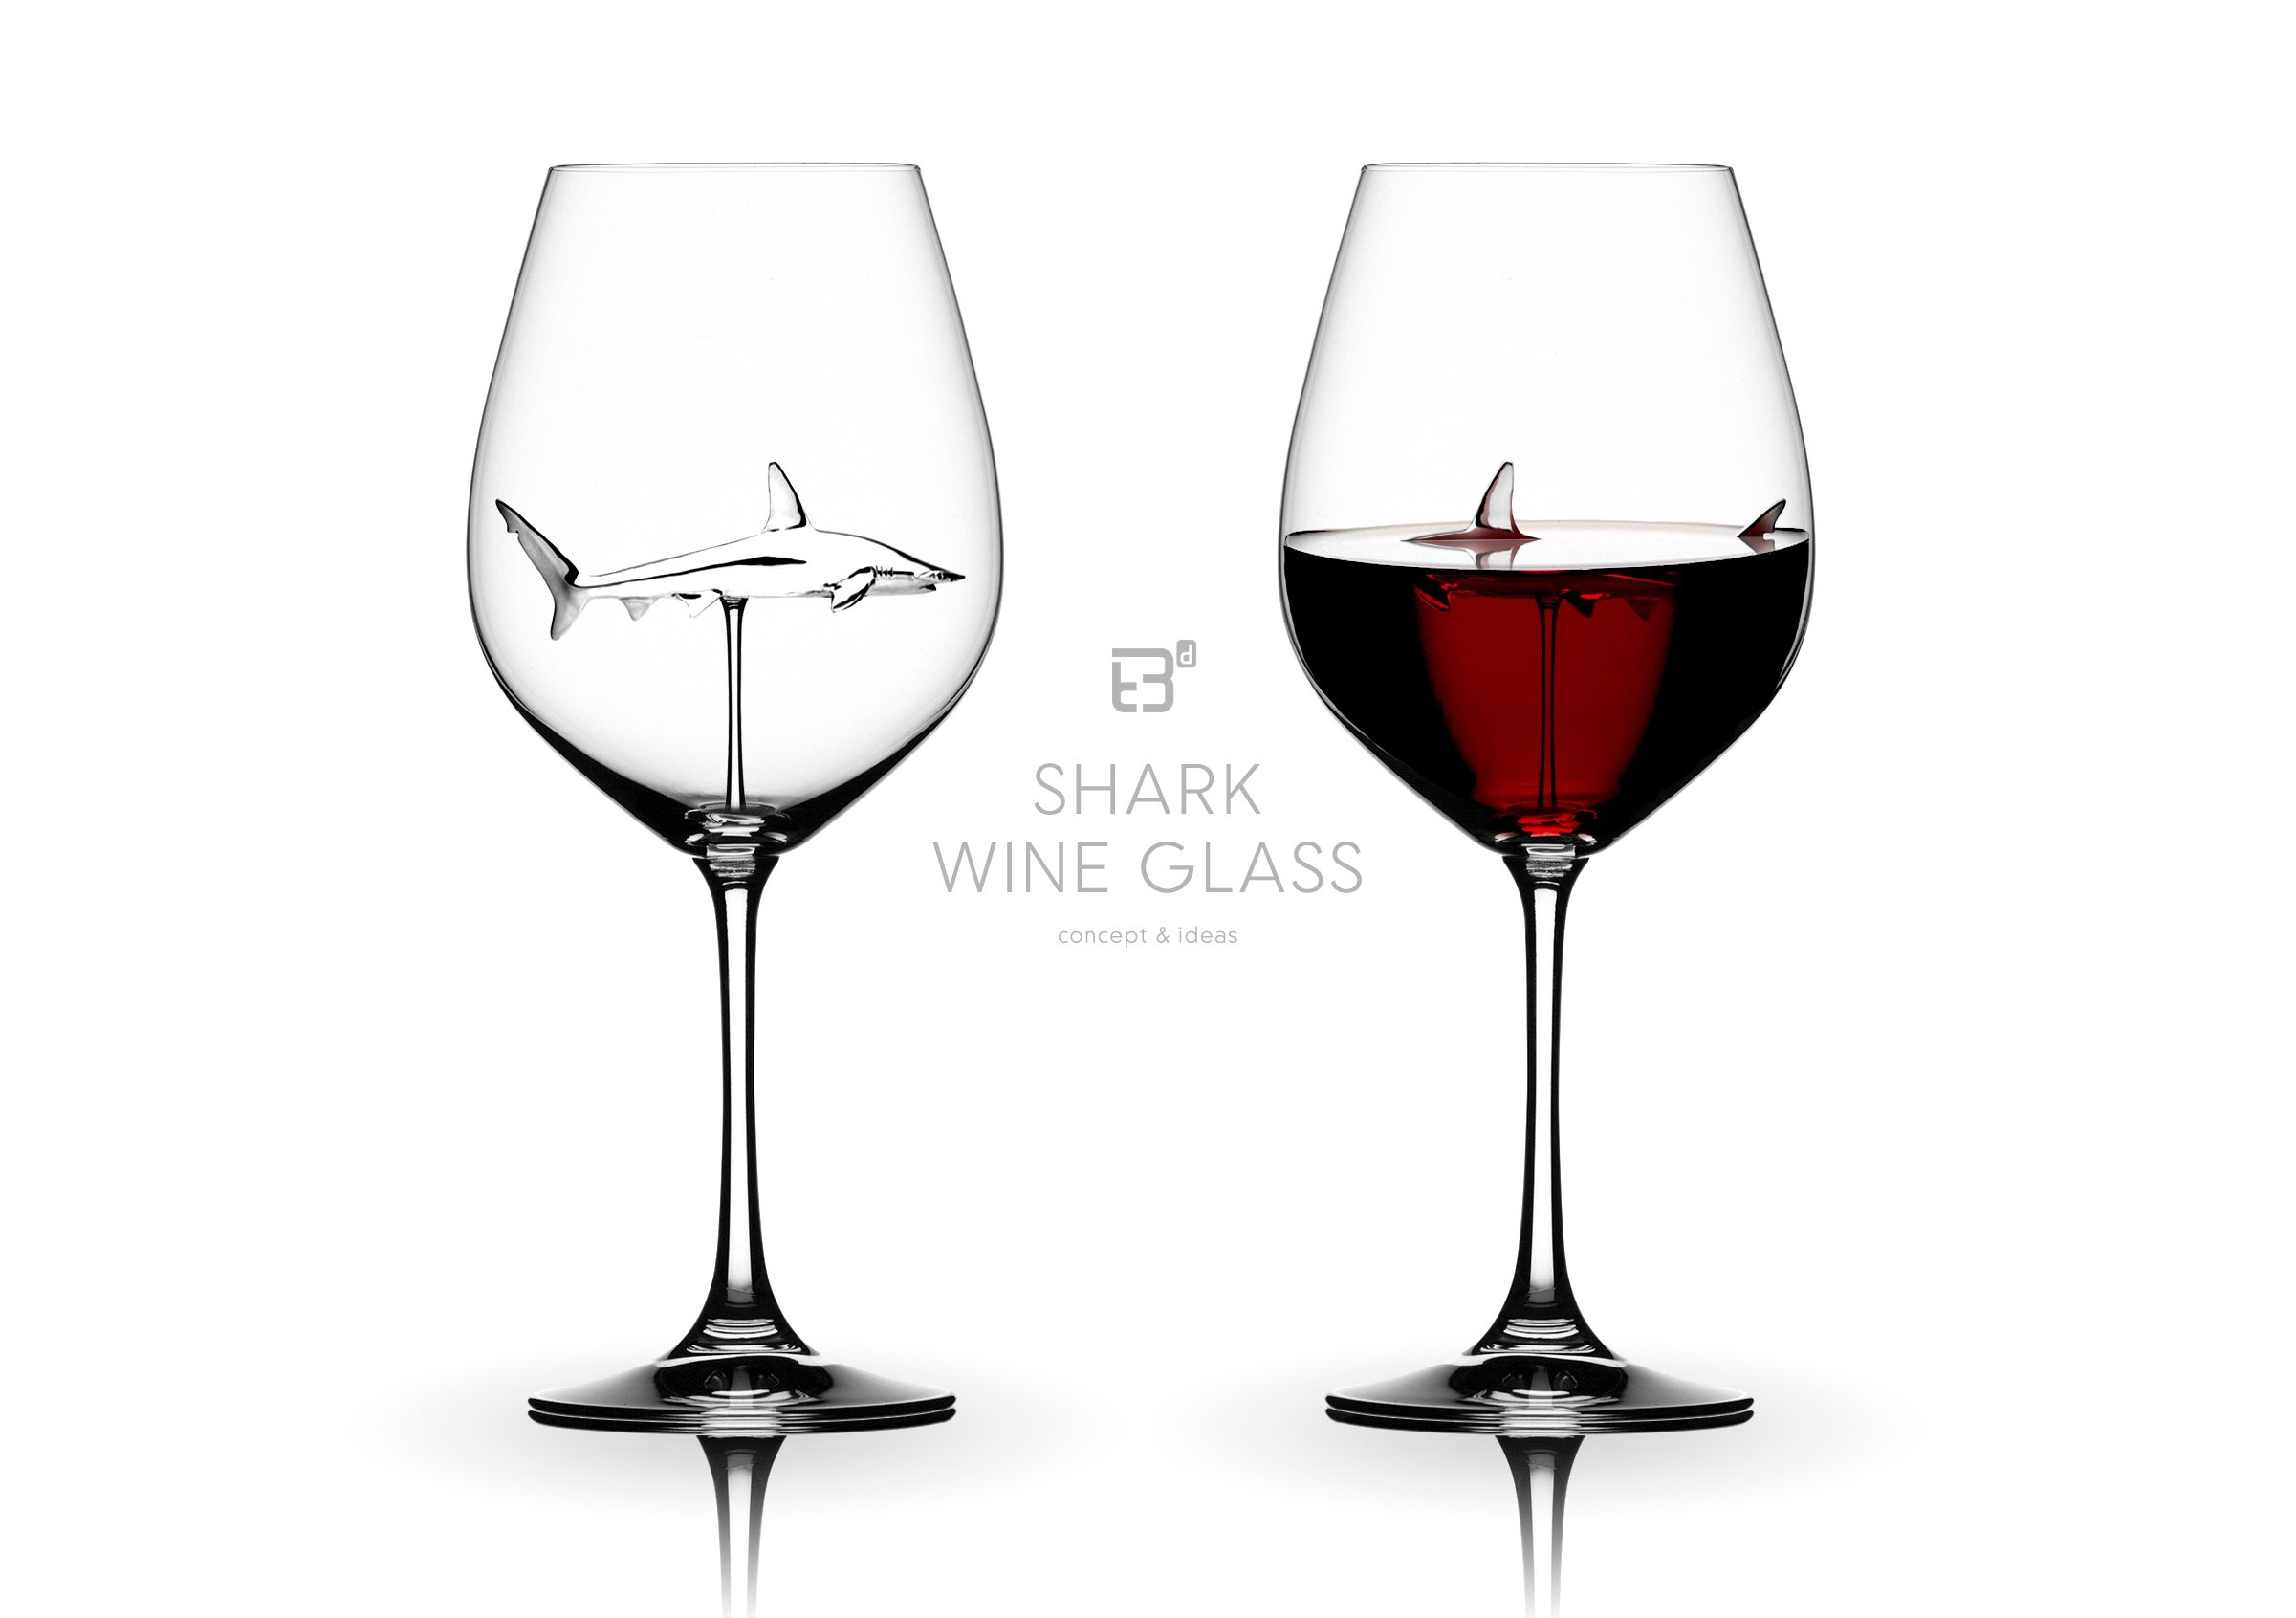 Wine Glass Ideas Shark Wine Glass Concept And Ideas Product Design Work